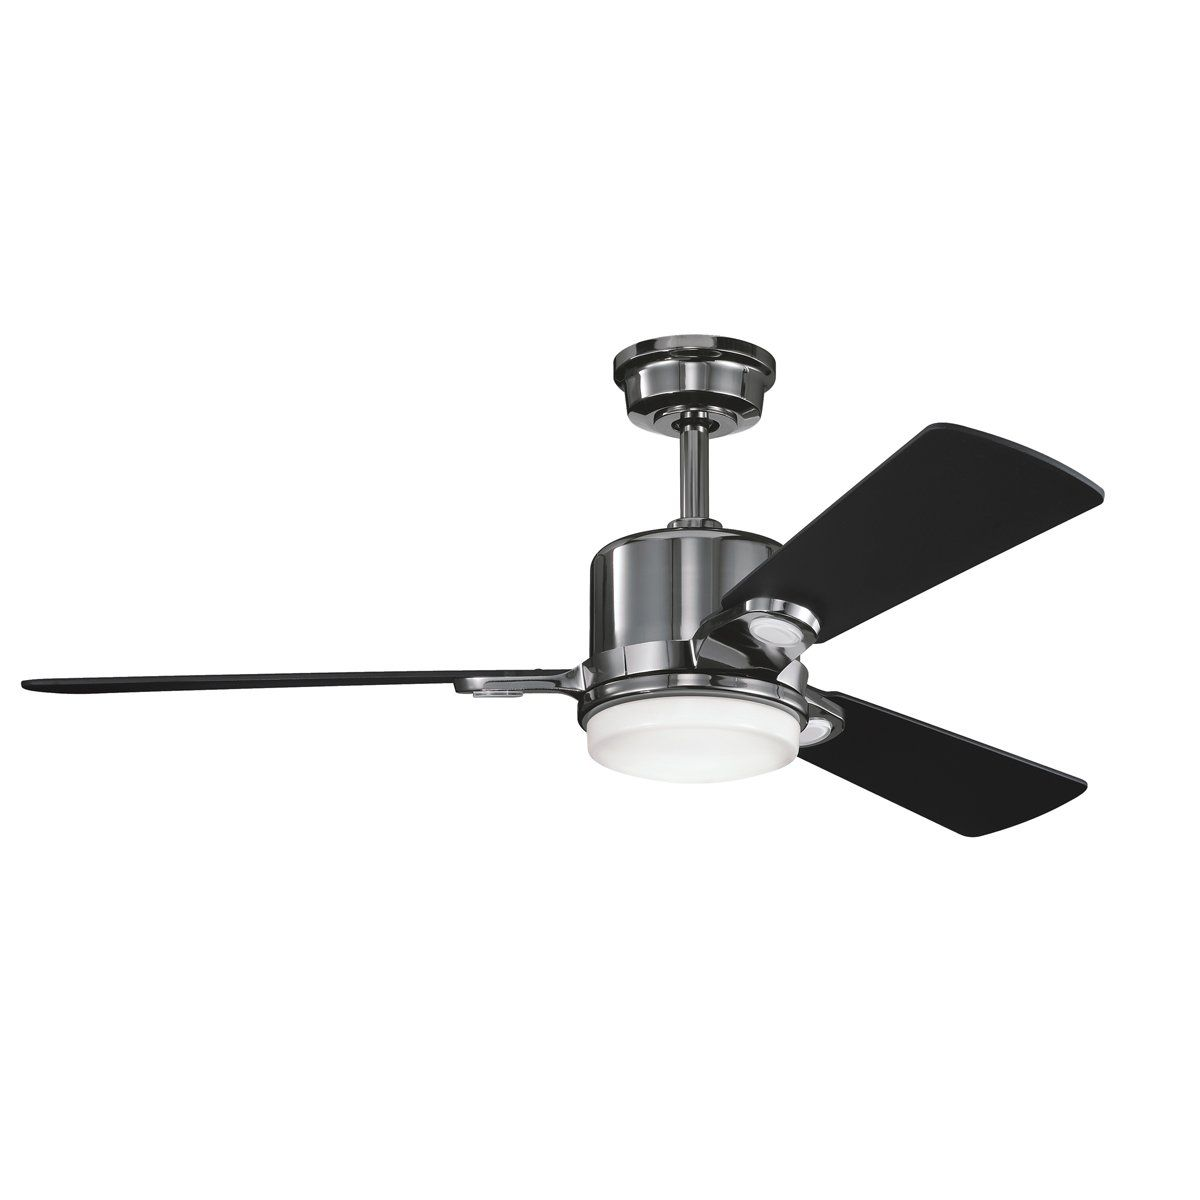 maor zinc inch fans kichler ceilings l weathered ceiling fan